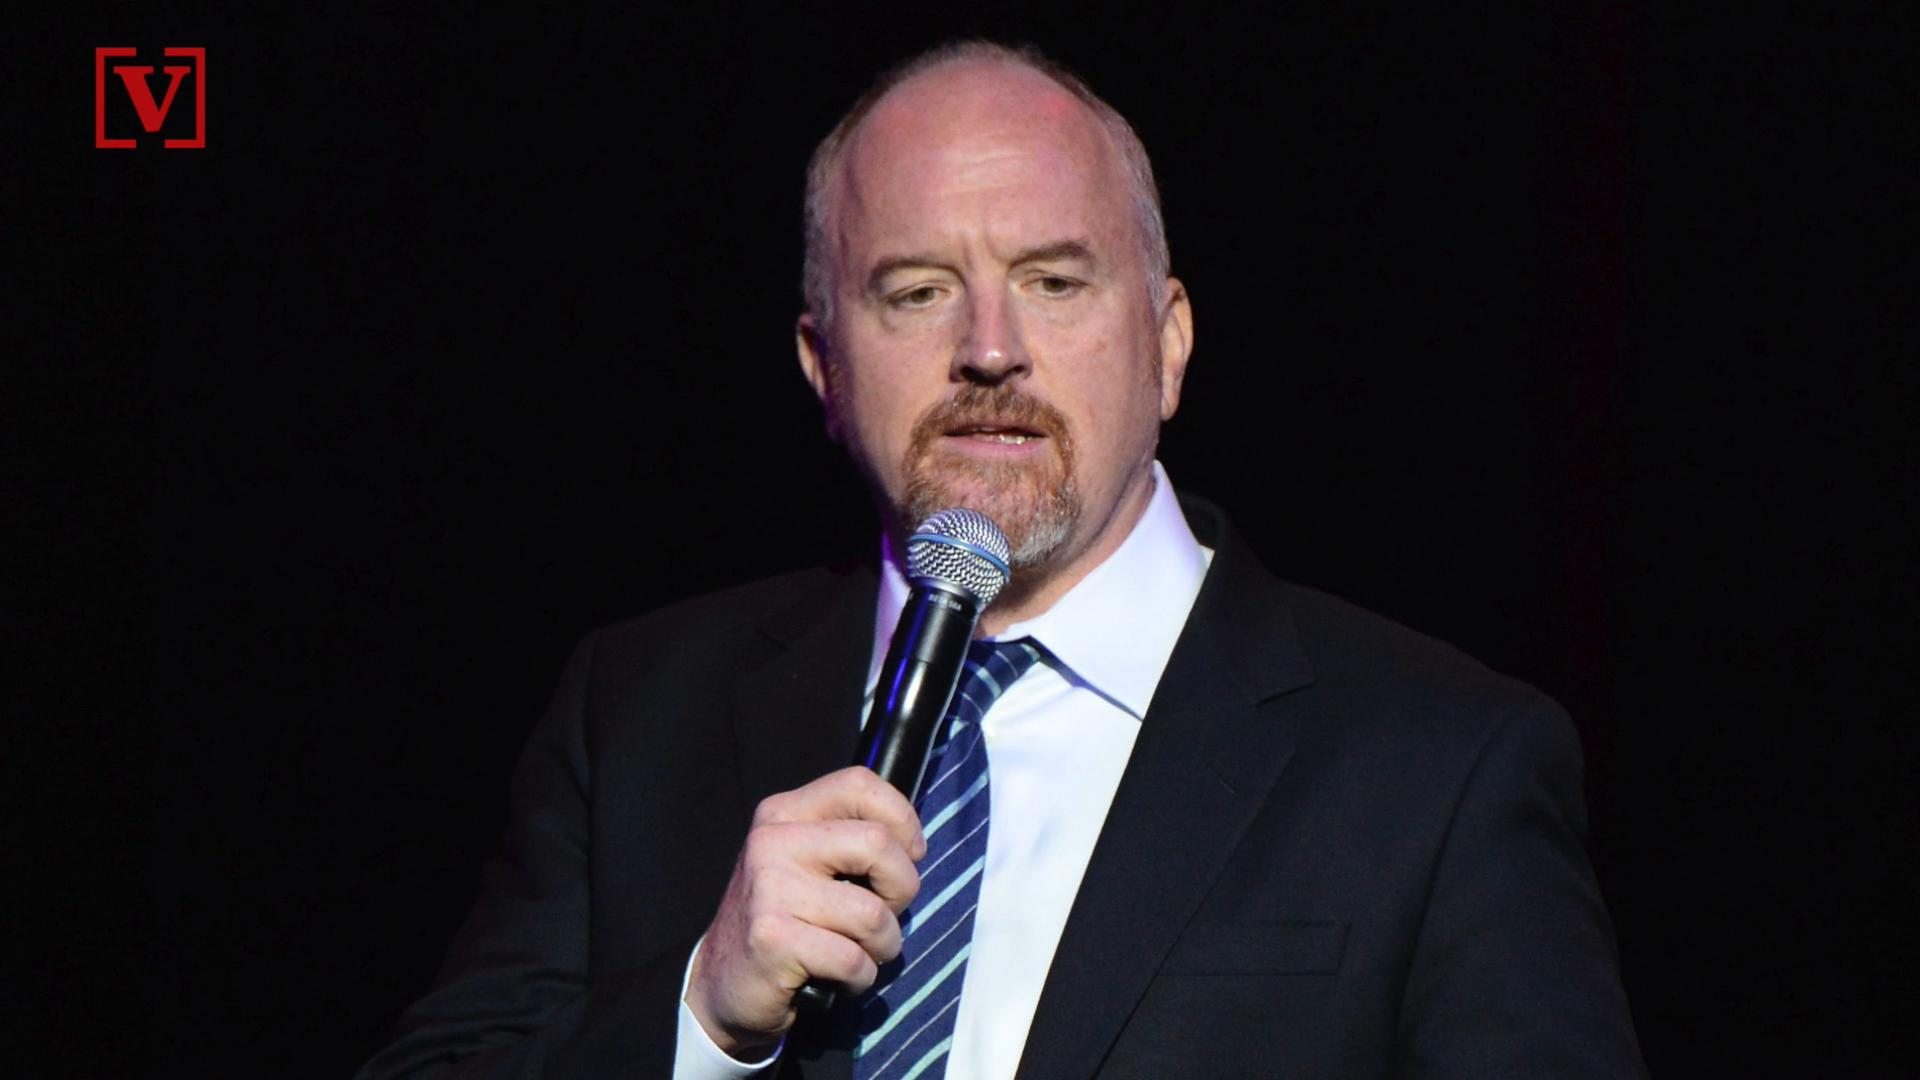 Louis C.K.'s 'Pathetic Jokes' About Parkland Shooting Slammed By Victim's Dad